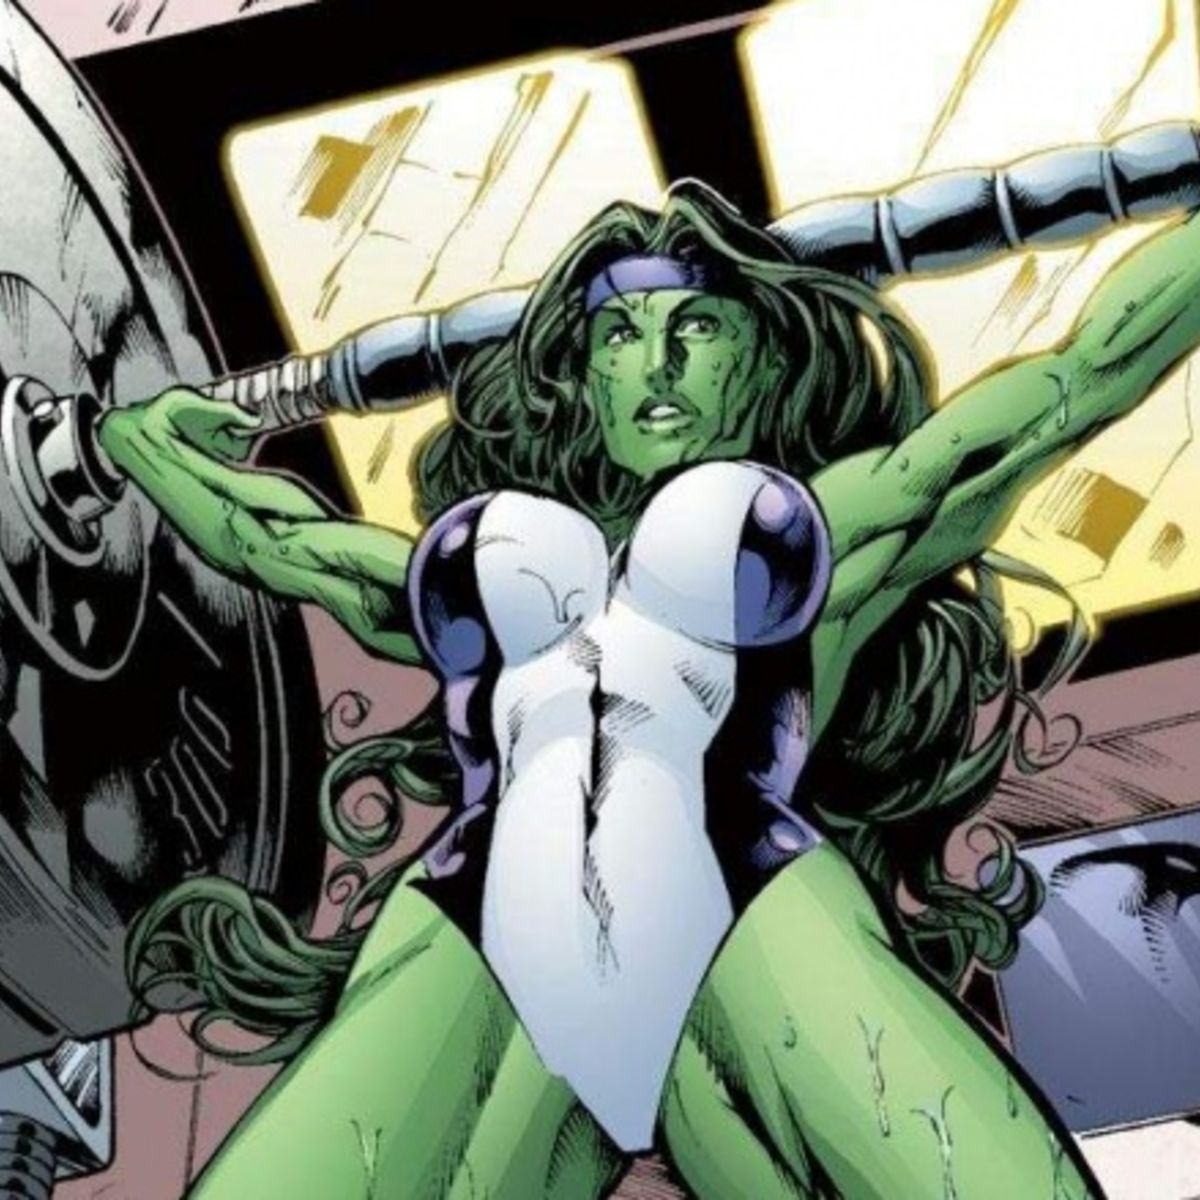 she-hulk-was-only-created-to-protect-potential-future-tvfilm-rights.jpg